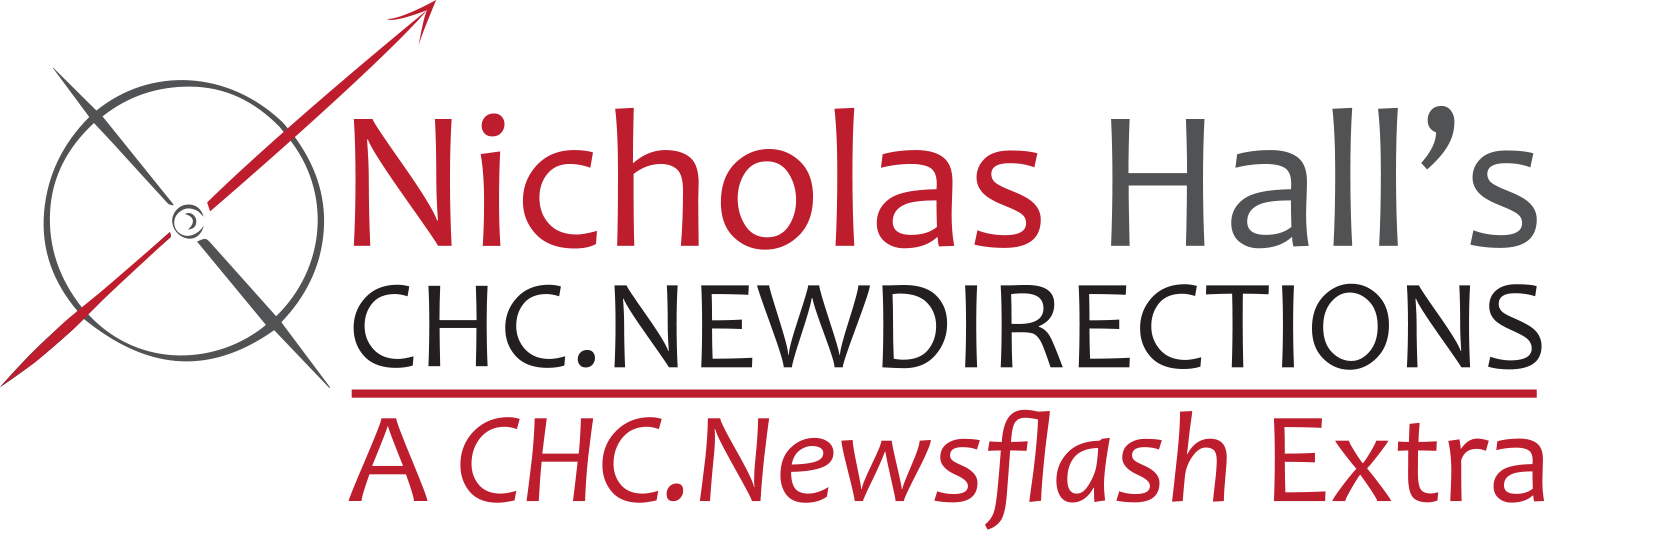 New Directions, A CHC Newsflash Extra